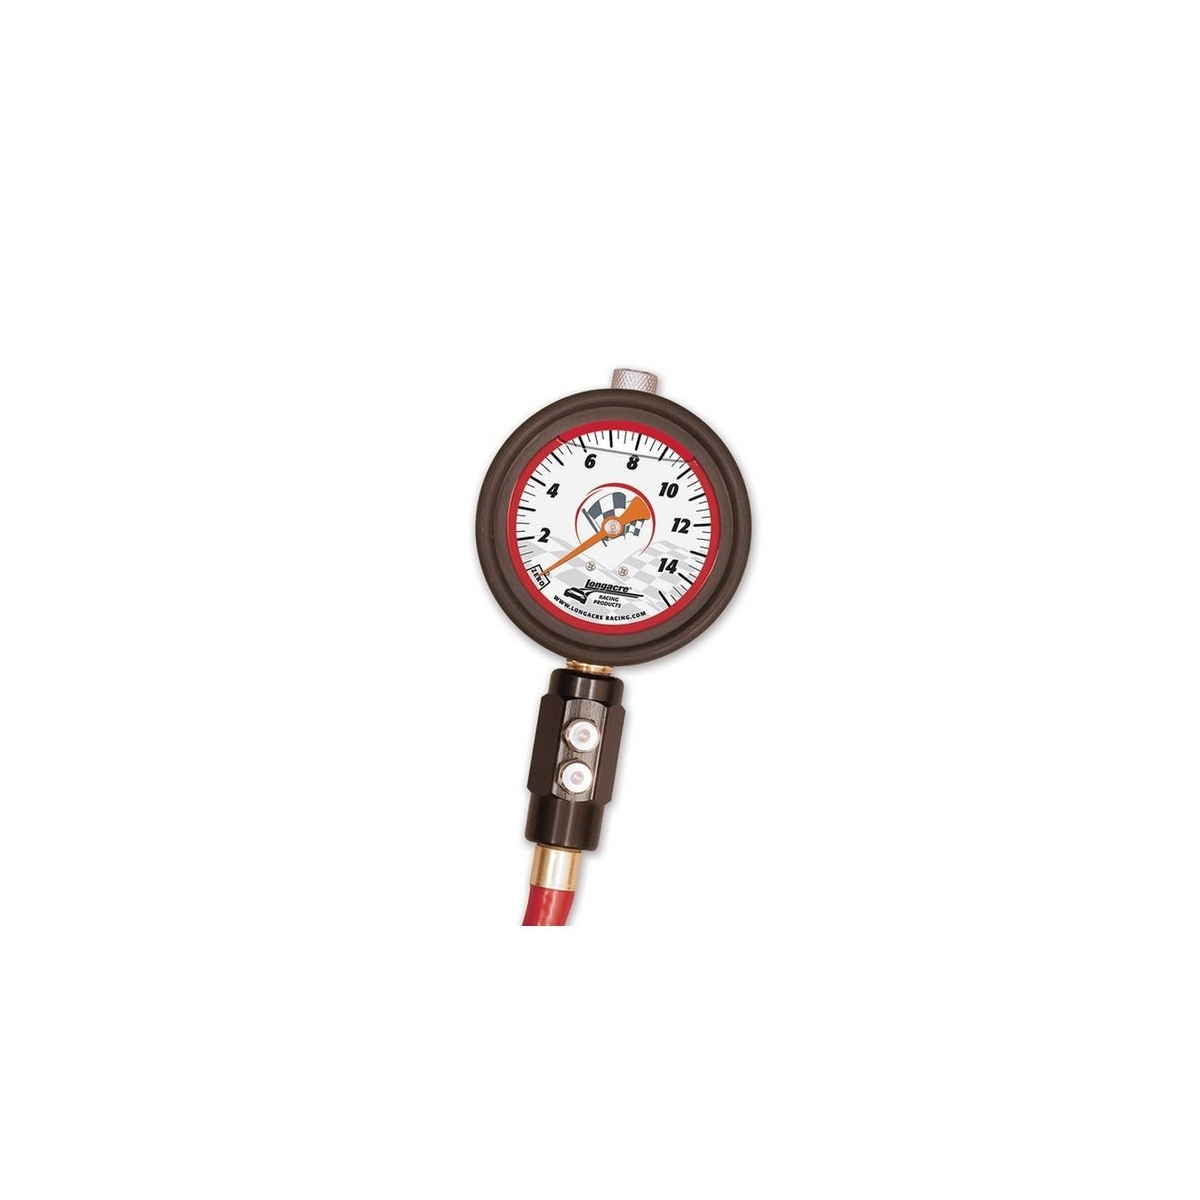 Longacre 0 15 By Lb Liquid Filled 2 Tire Gauge